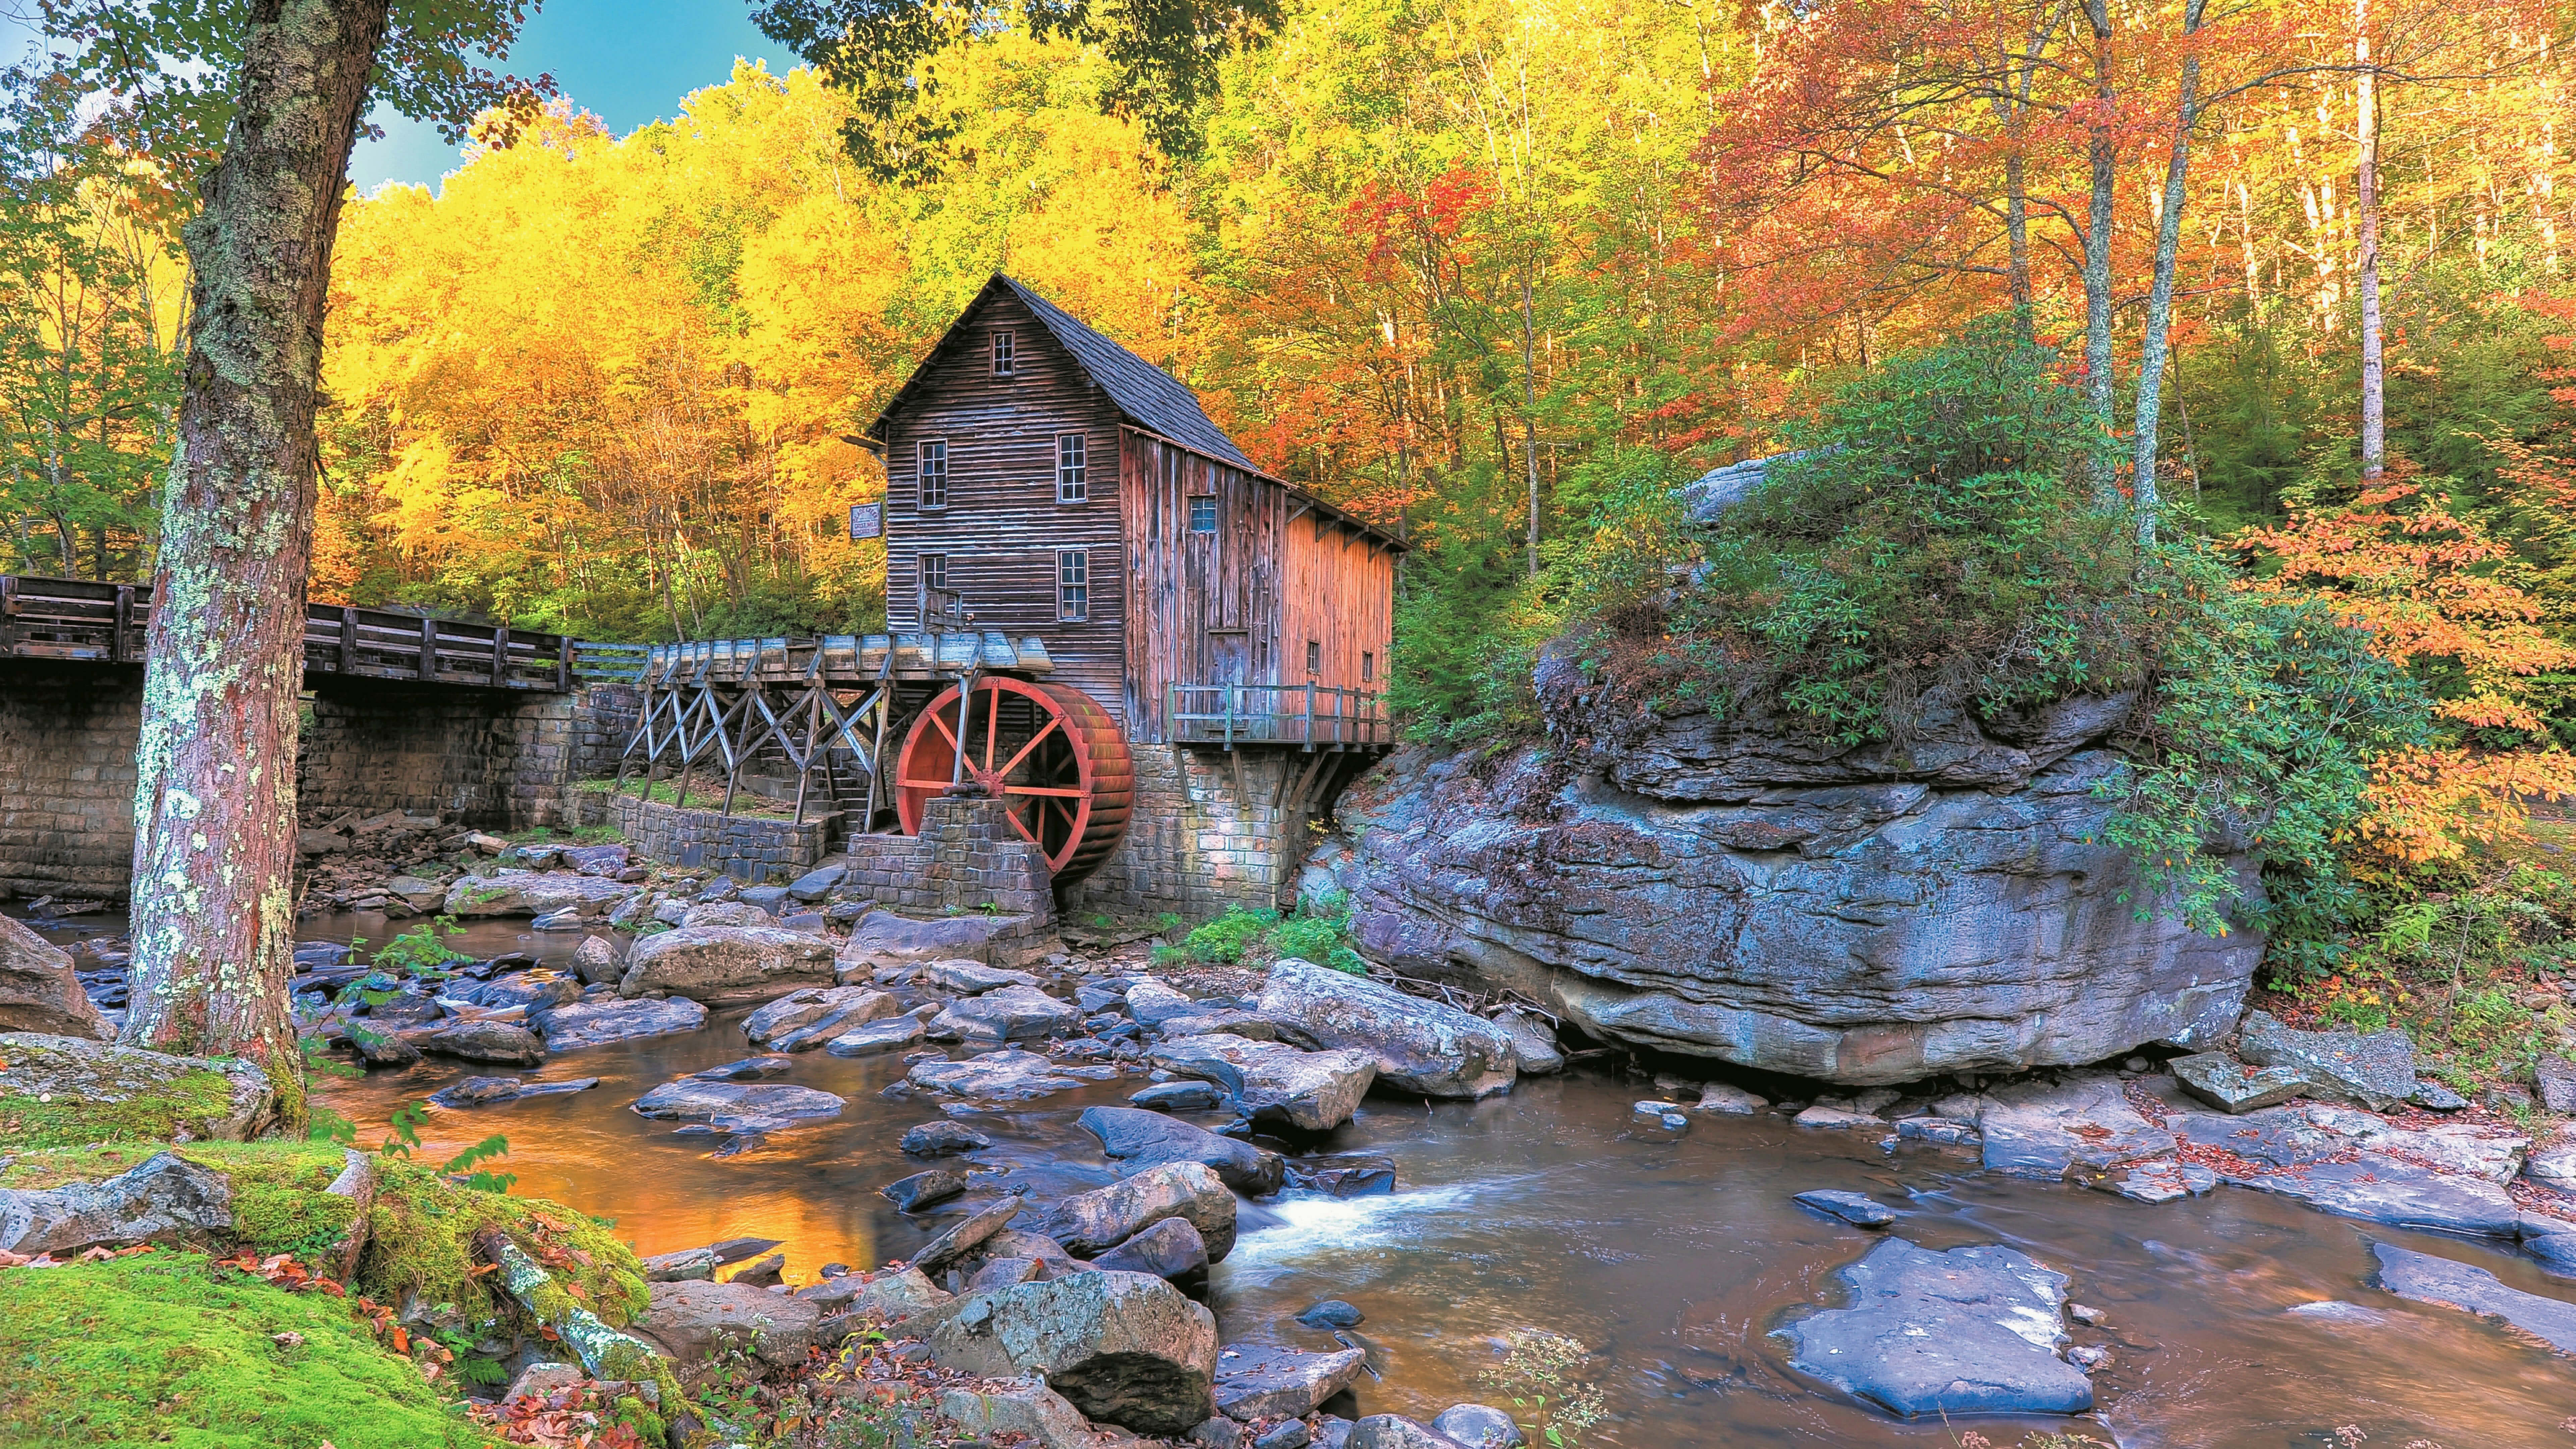 Cars Hd Mobile Wallpapers Autumn In Glade Creek Grist Mill Uhd 8k Wallpaper Pixelz